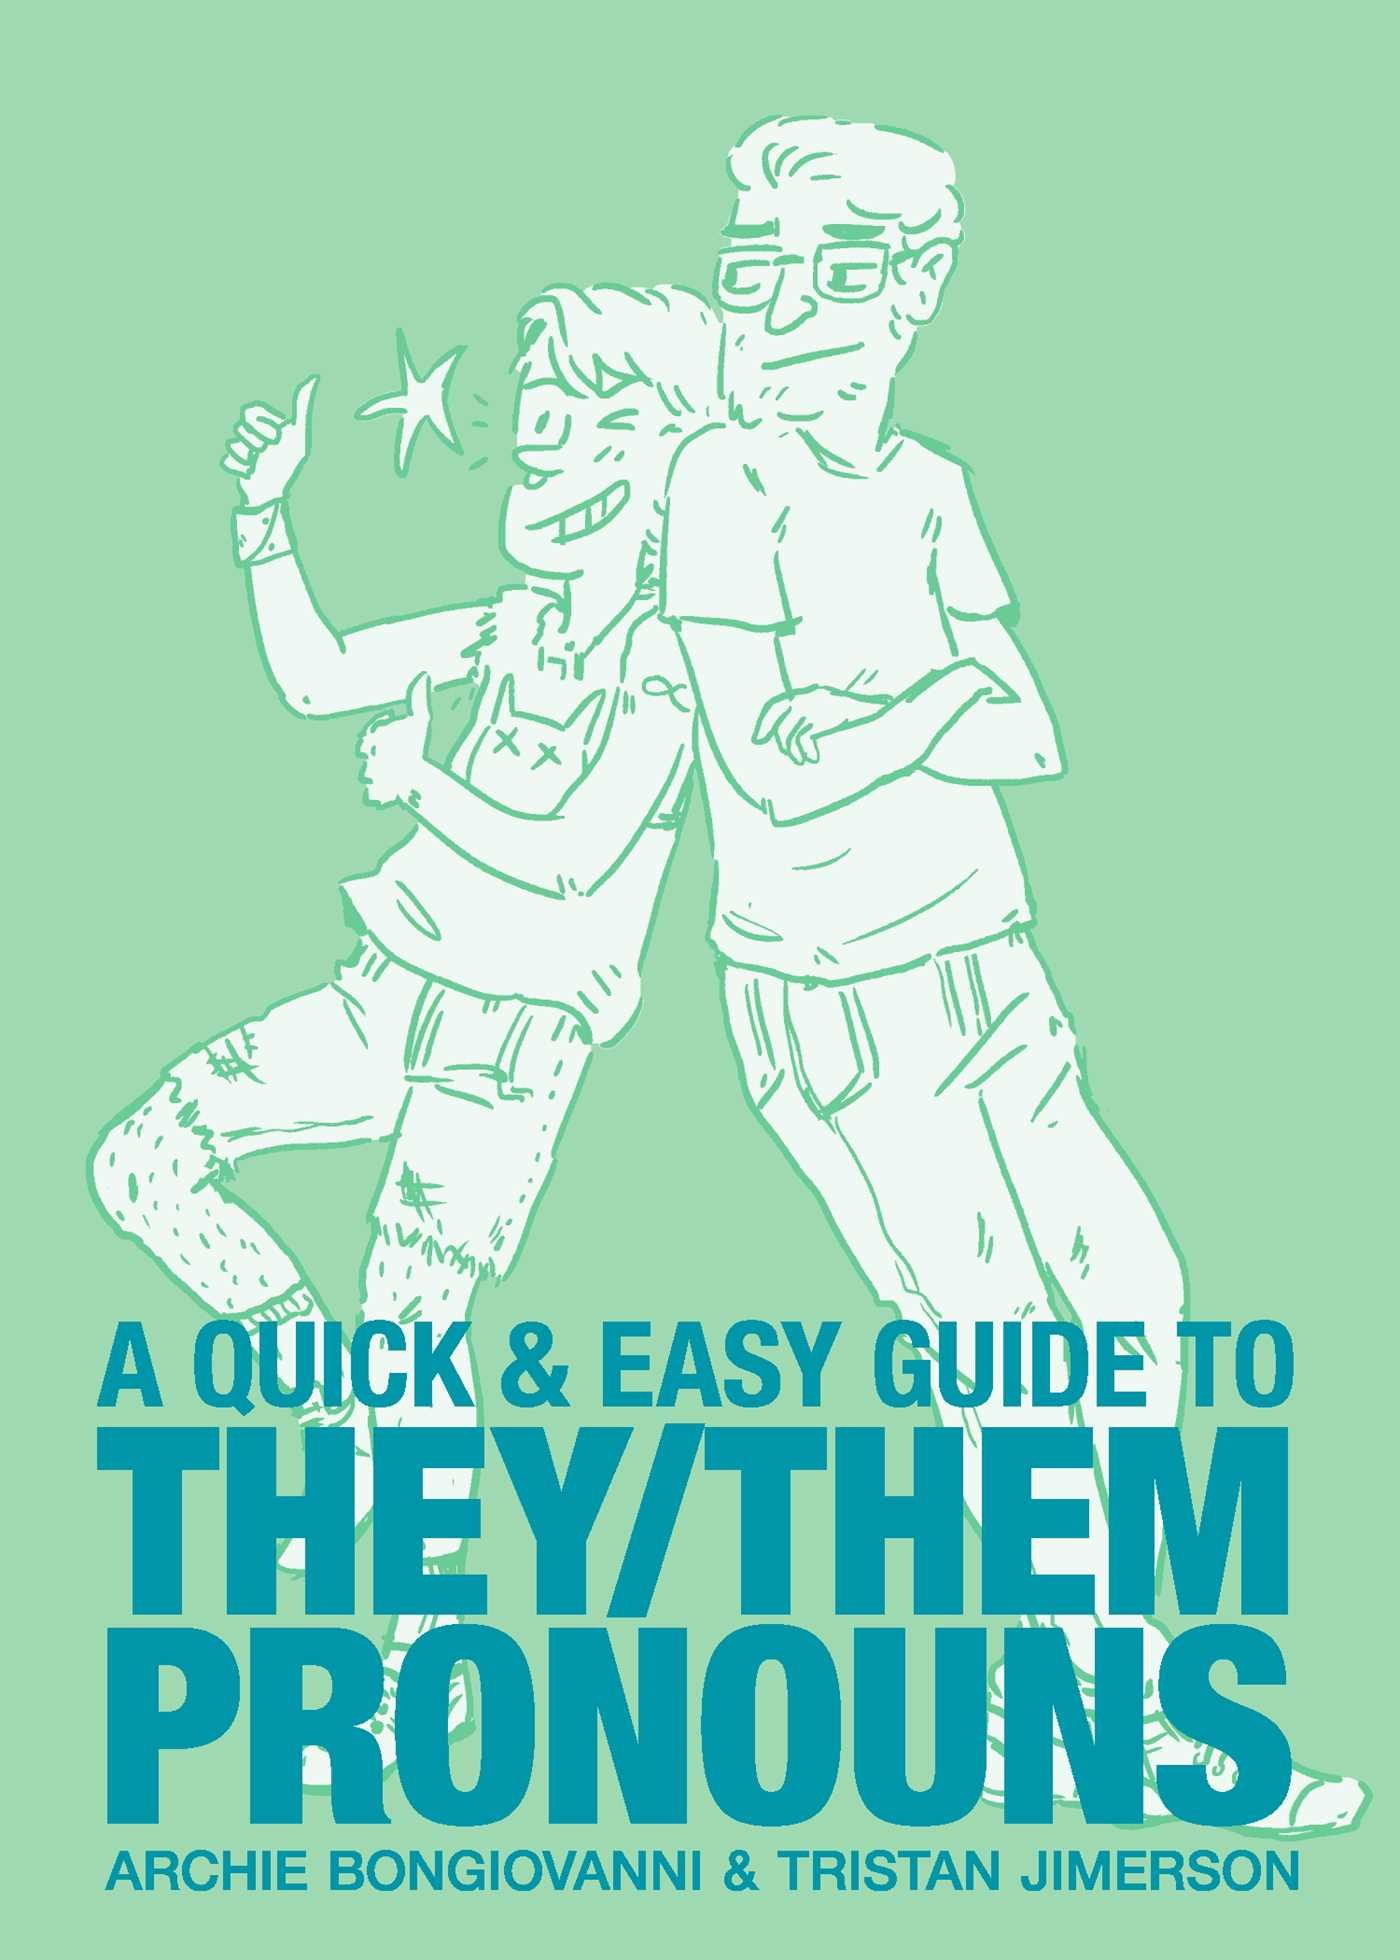 A Quick & Easy Guide to They/Them Pronouns by Archie Bongiovanni & Tristan Jimerson | SLJ Review